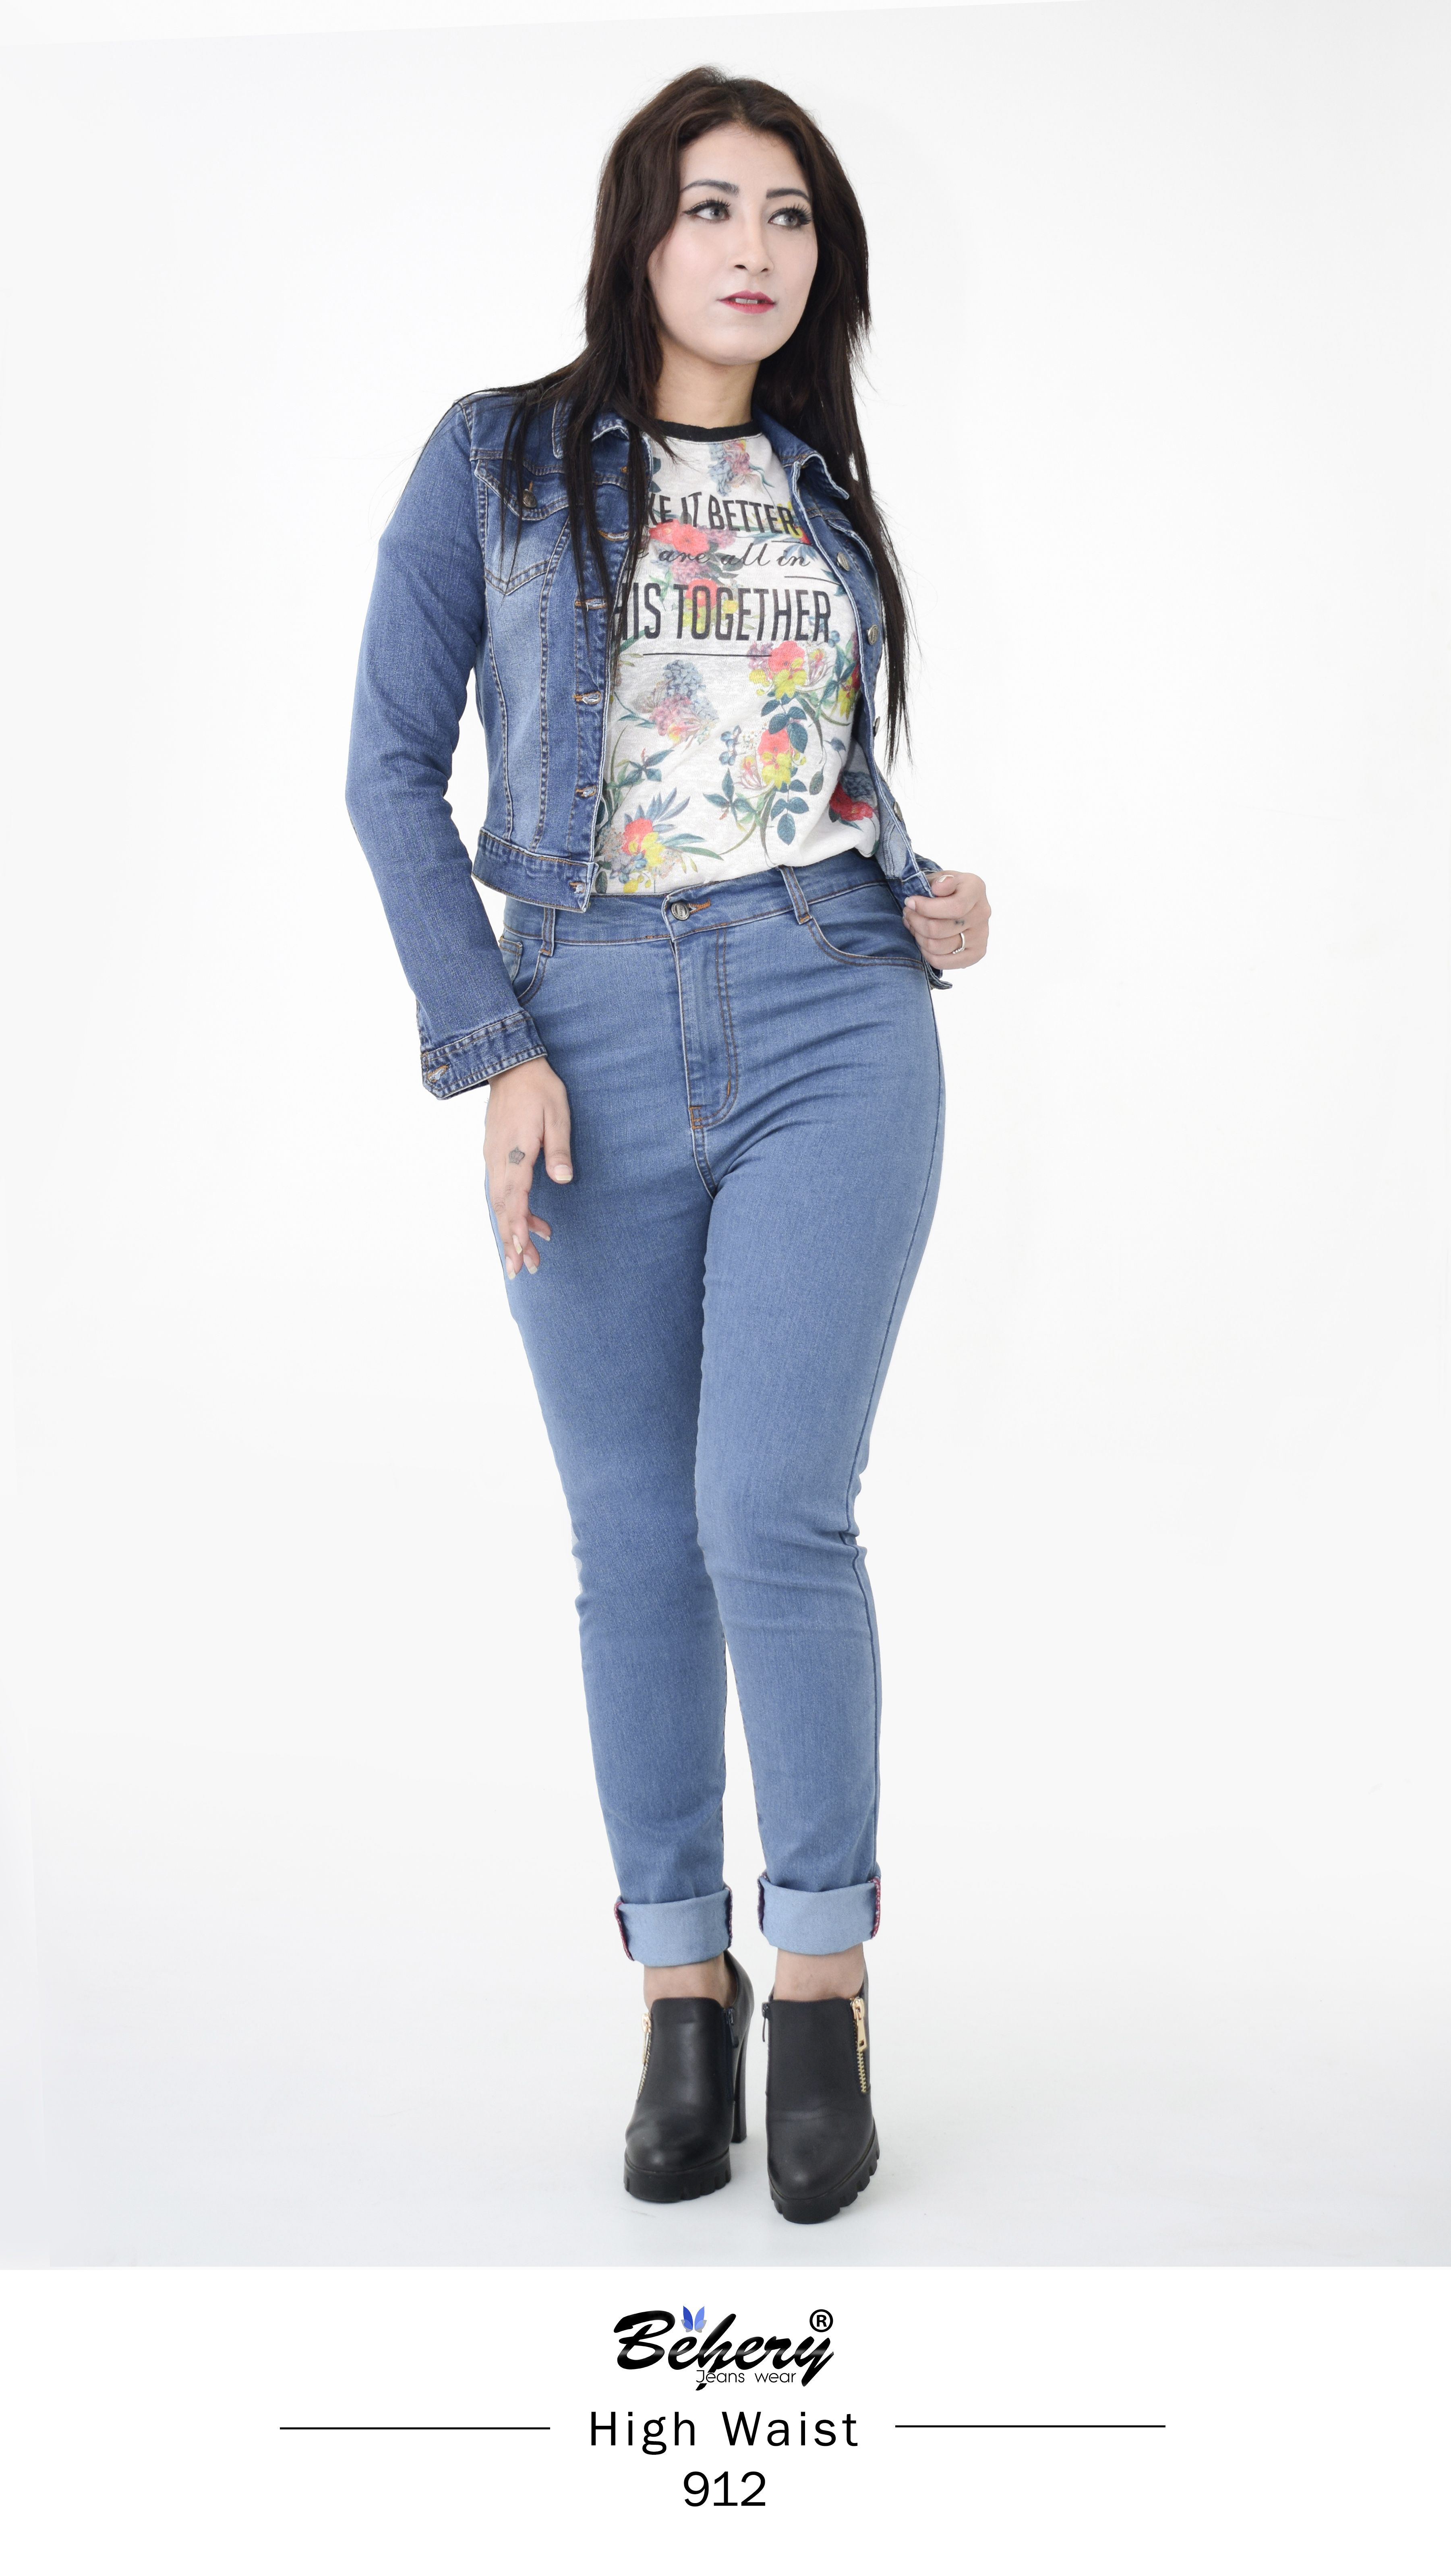 8e2404130 Behery jeans Products